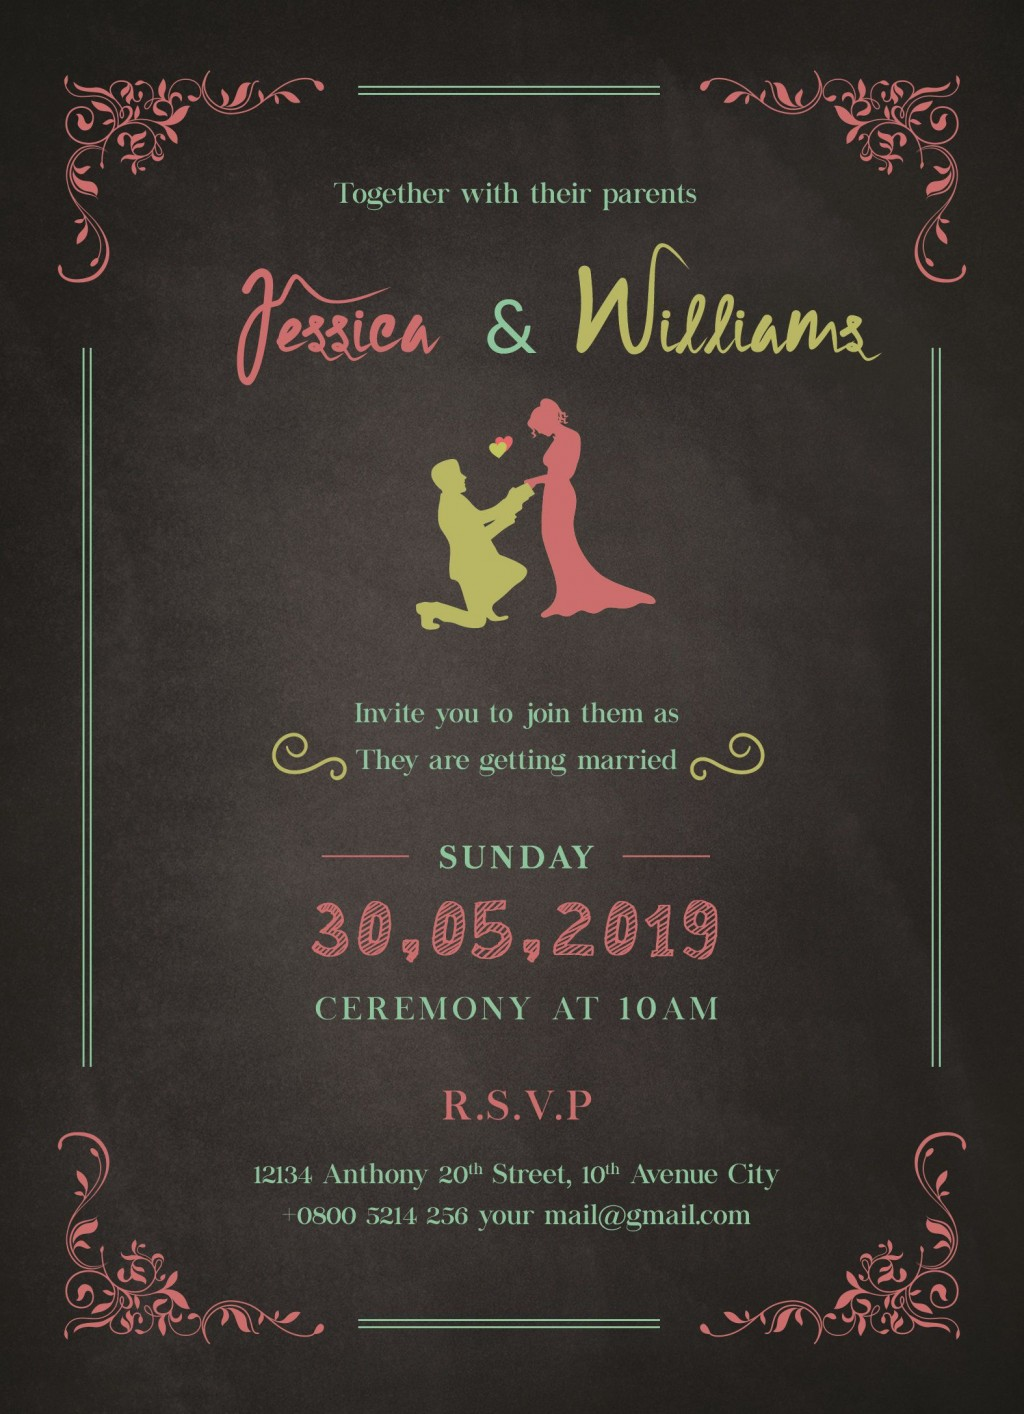 009 Imposing Free Download Invitation Card Design Software Sample  Full Version Wedding For PcLarge